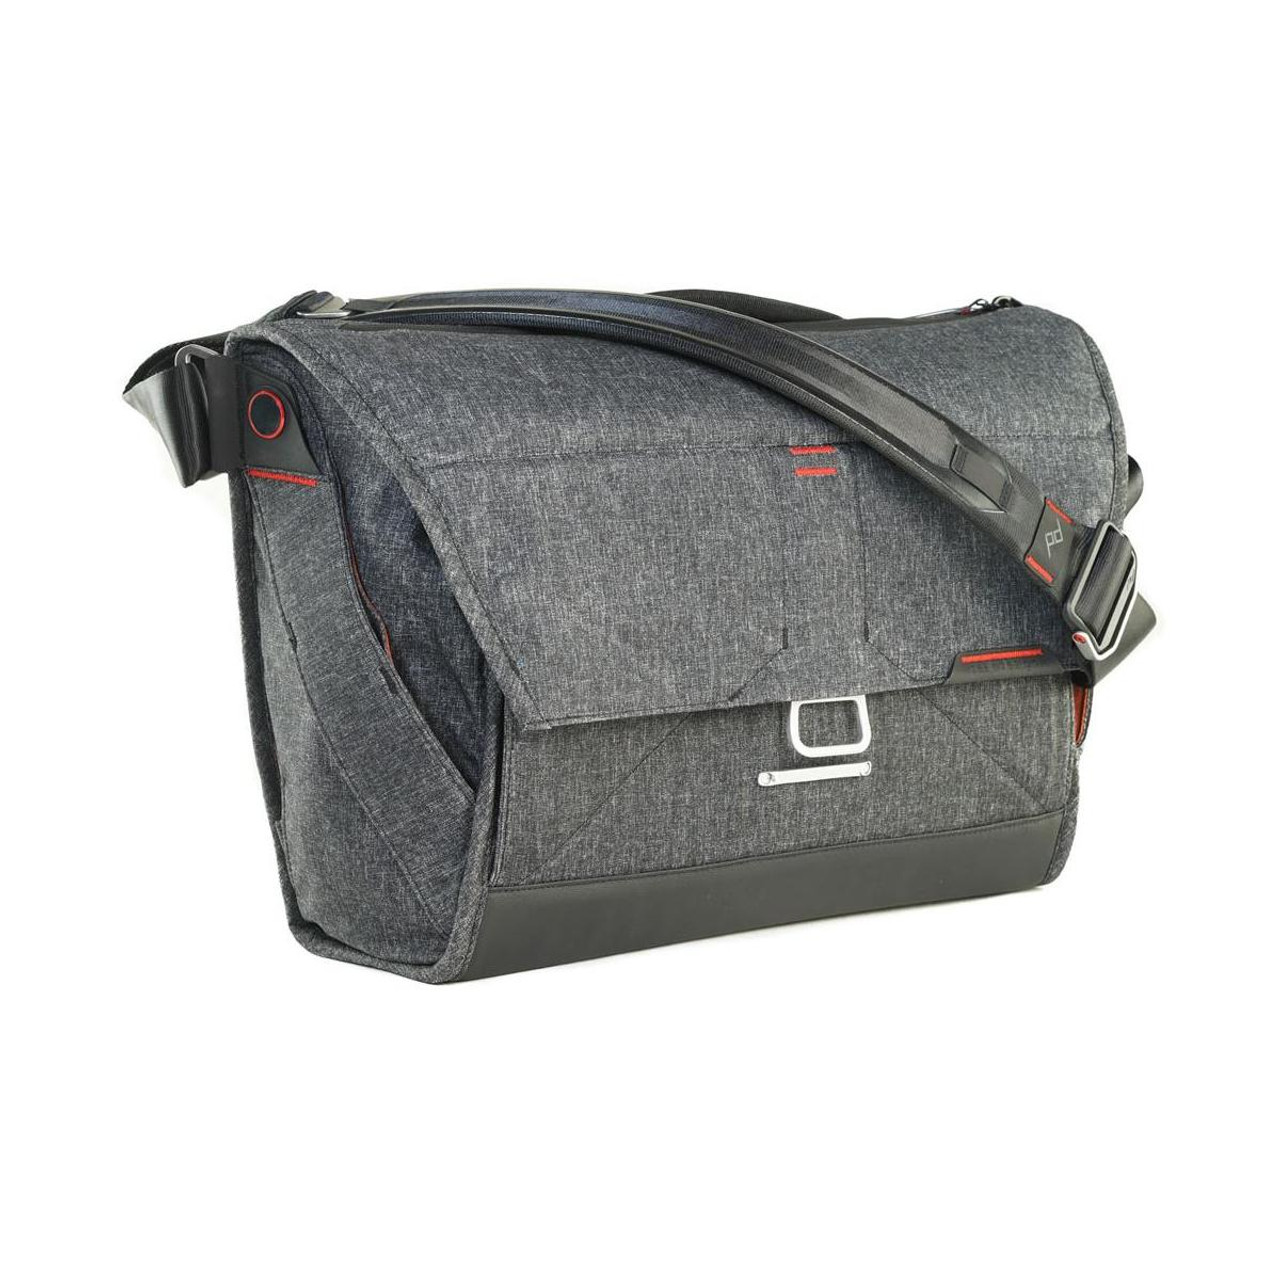 Peak Design Peak Design The Everyday Messenger Shoulder Bag For Dslr 3 Lenses Accessories Charcoal